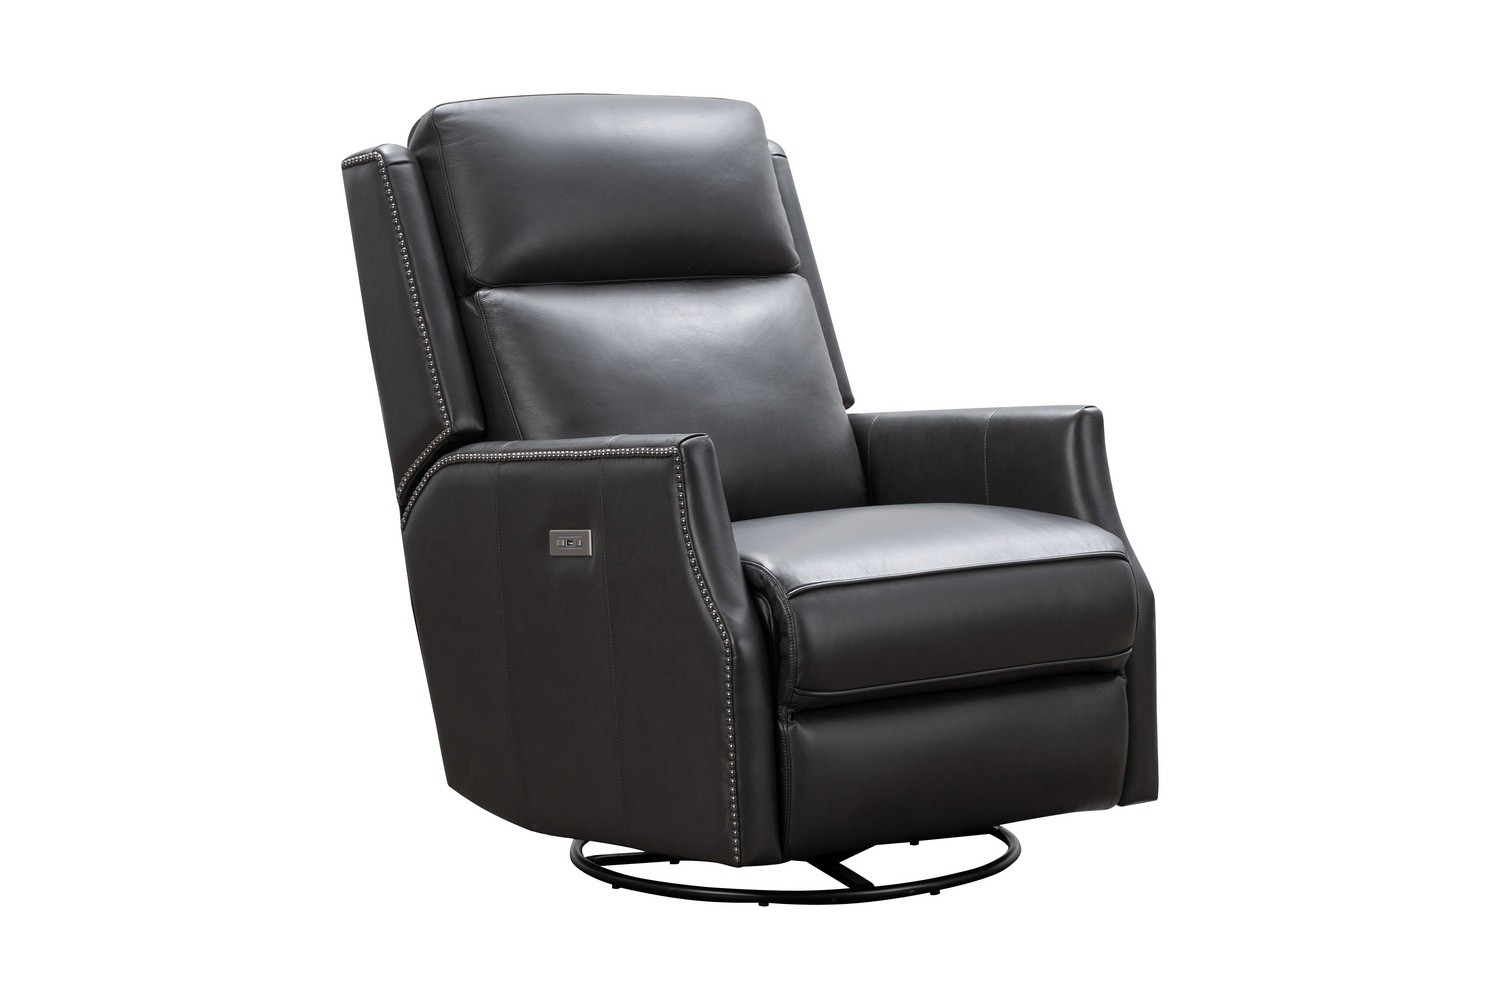 Barcalounger Cavill Swivel Glider Recliner Chair with Power Recline and Power Head Rest - Shoreham Gray/All Leather